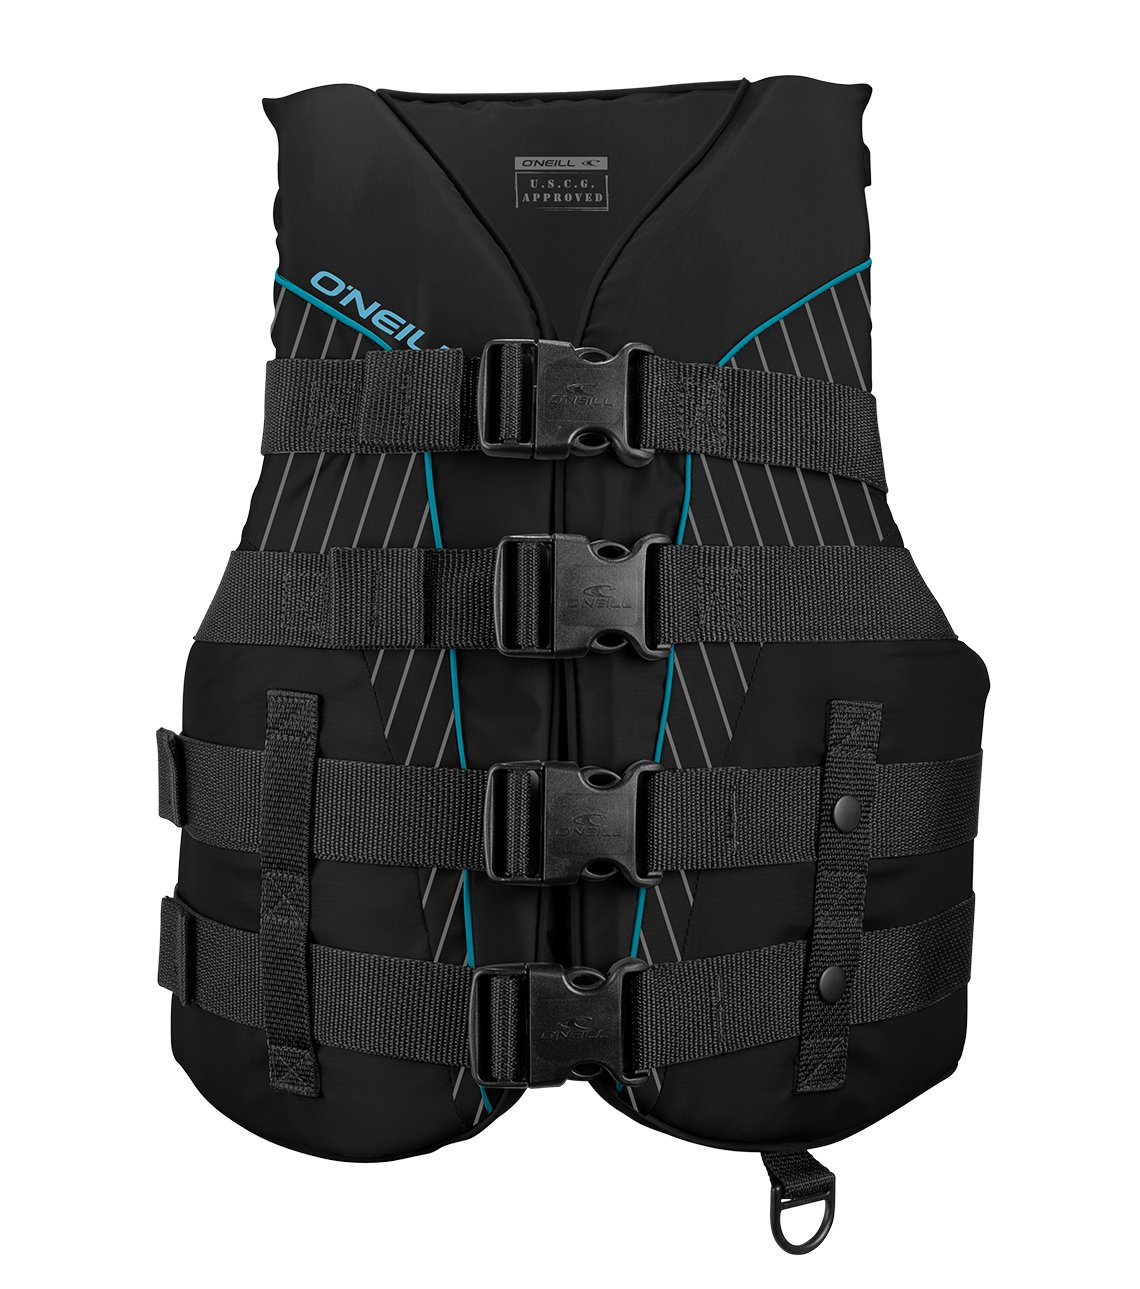 O'Neill Wetsuits  Women's SuperLite USCG Life Vest,Black/Turquoise,Large by O'Neill Wetsuits